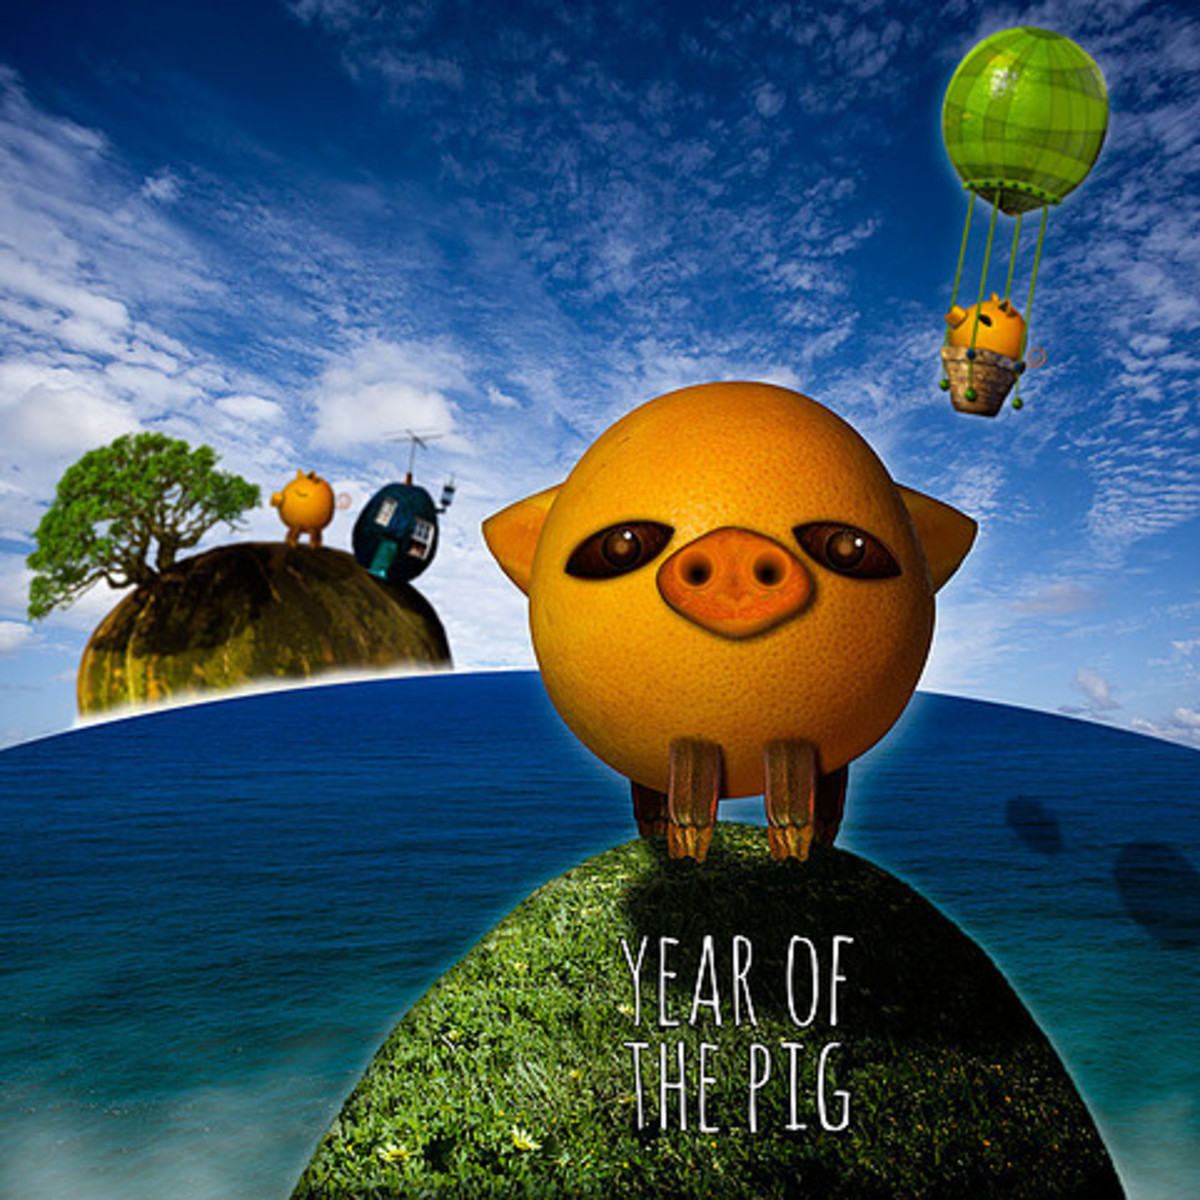 Carrie Webster - The Year of  The Pig